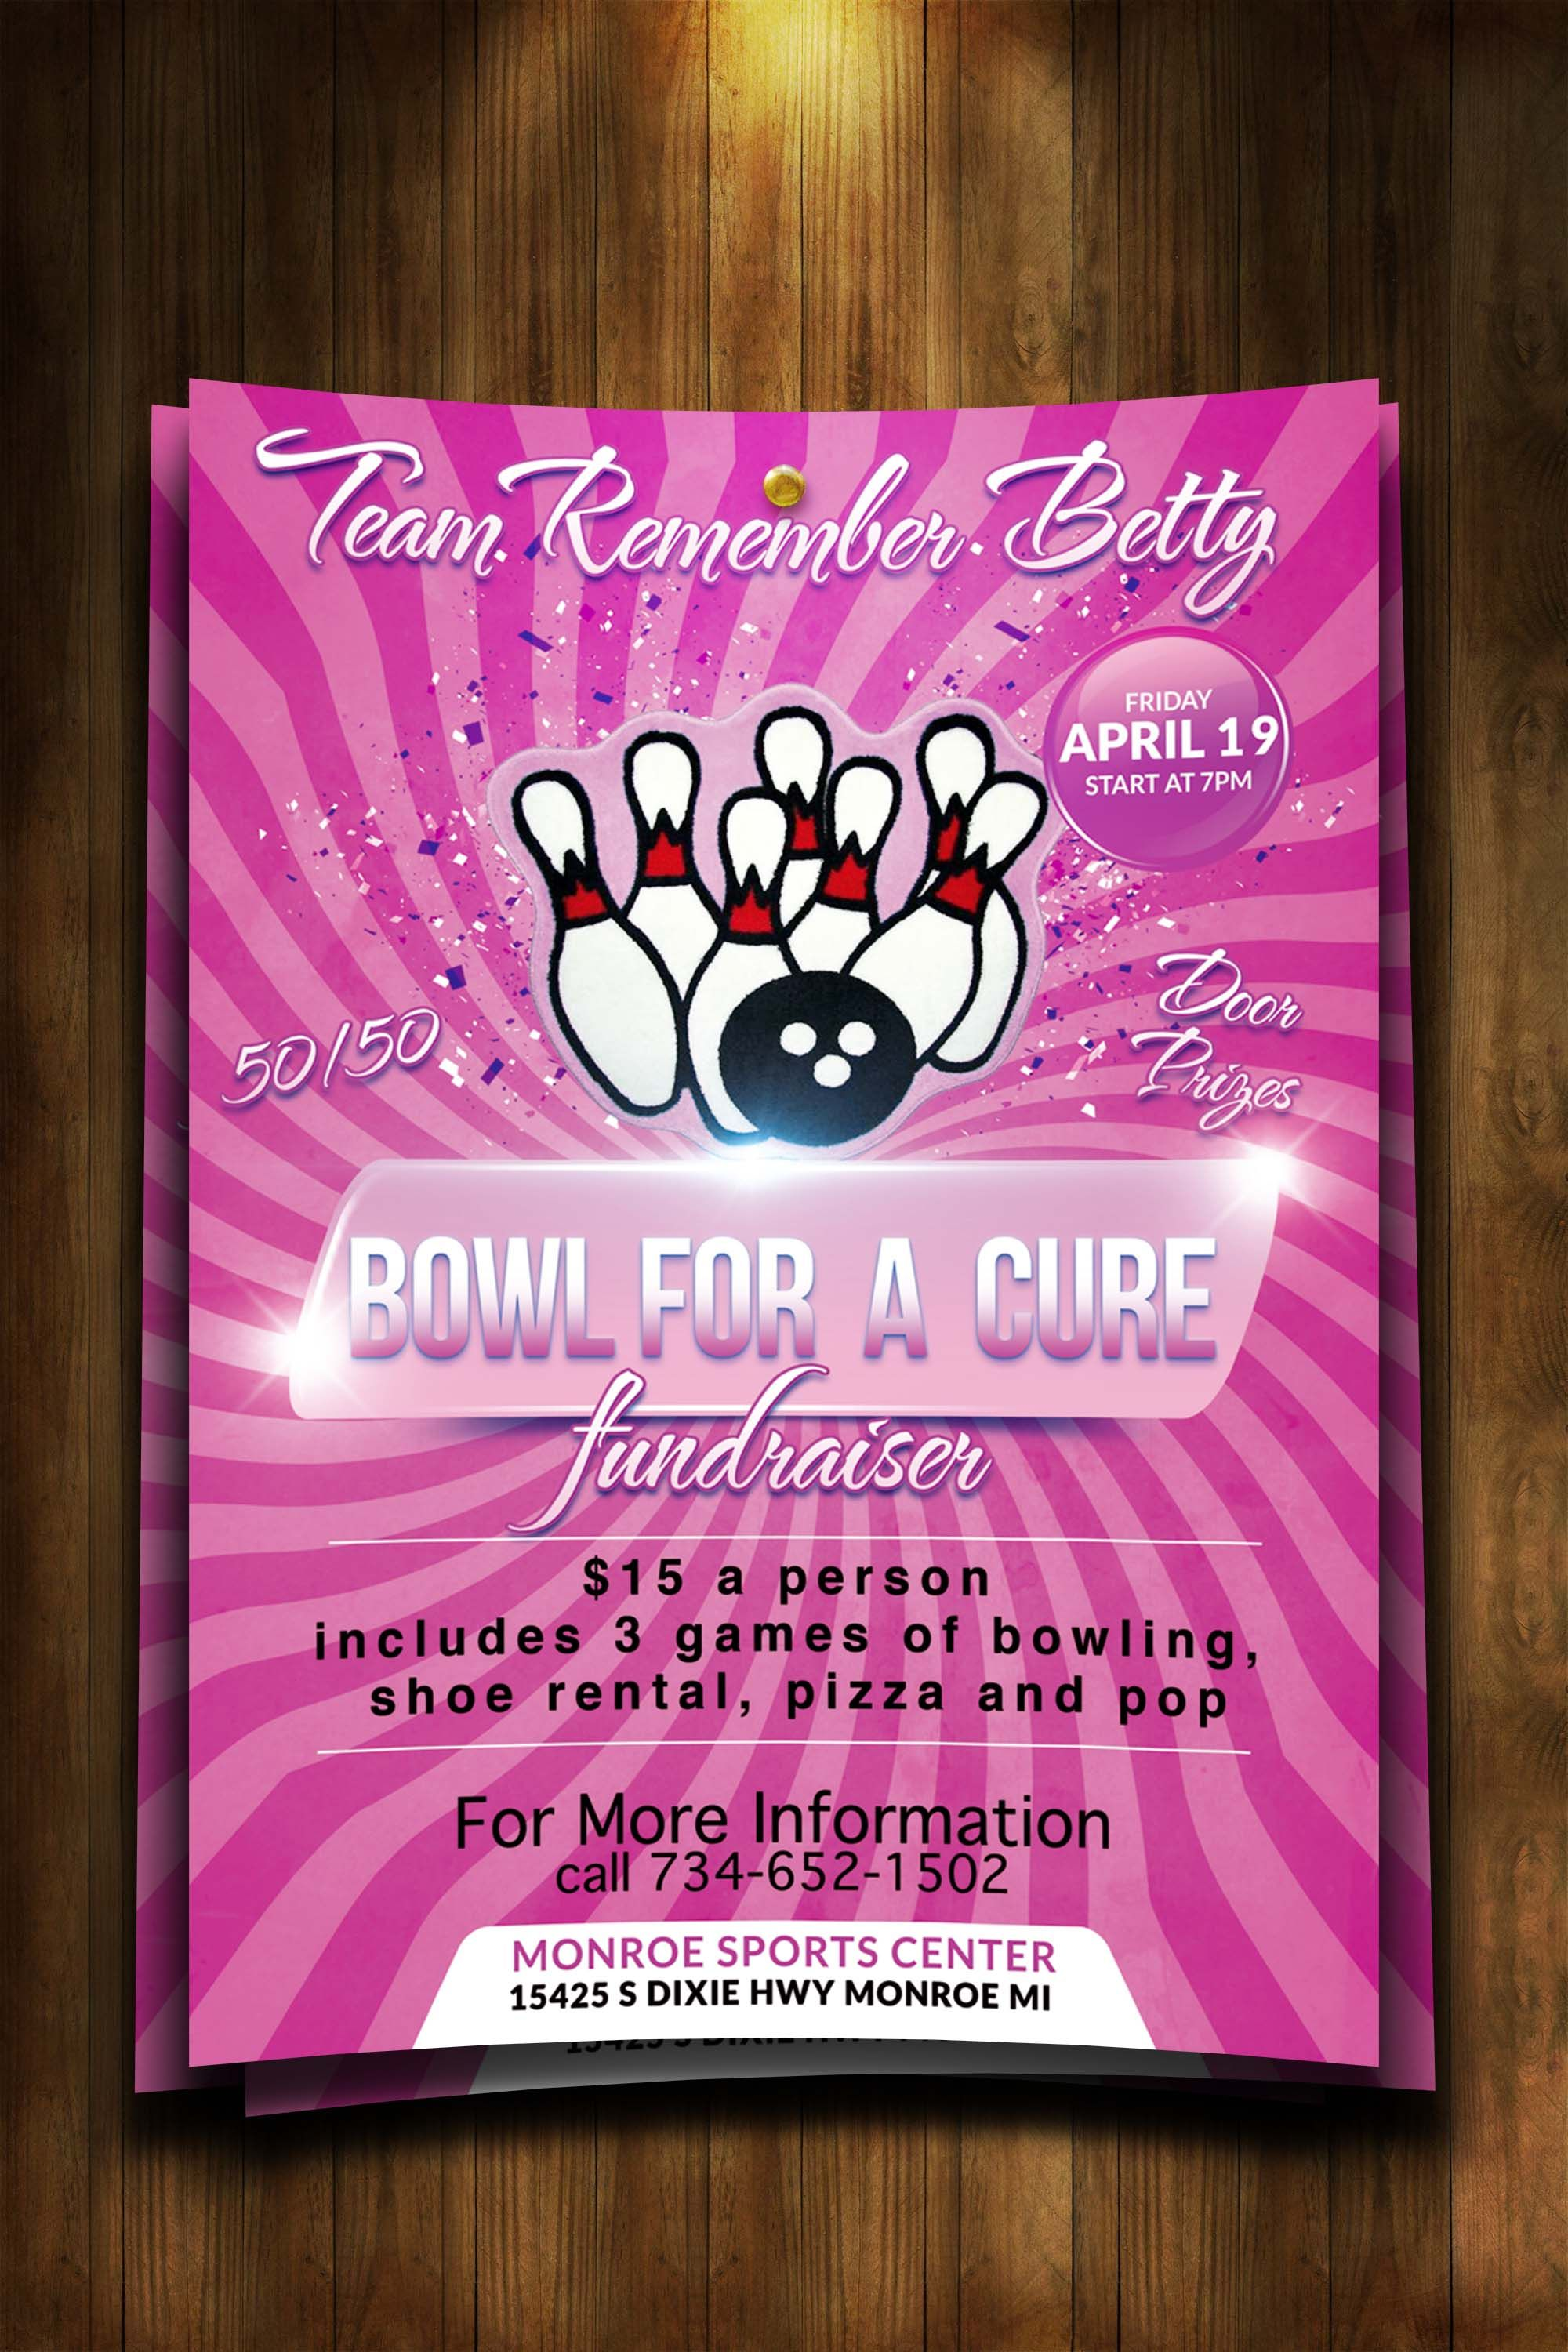 cancer benefit flyer ideas